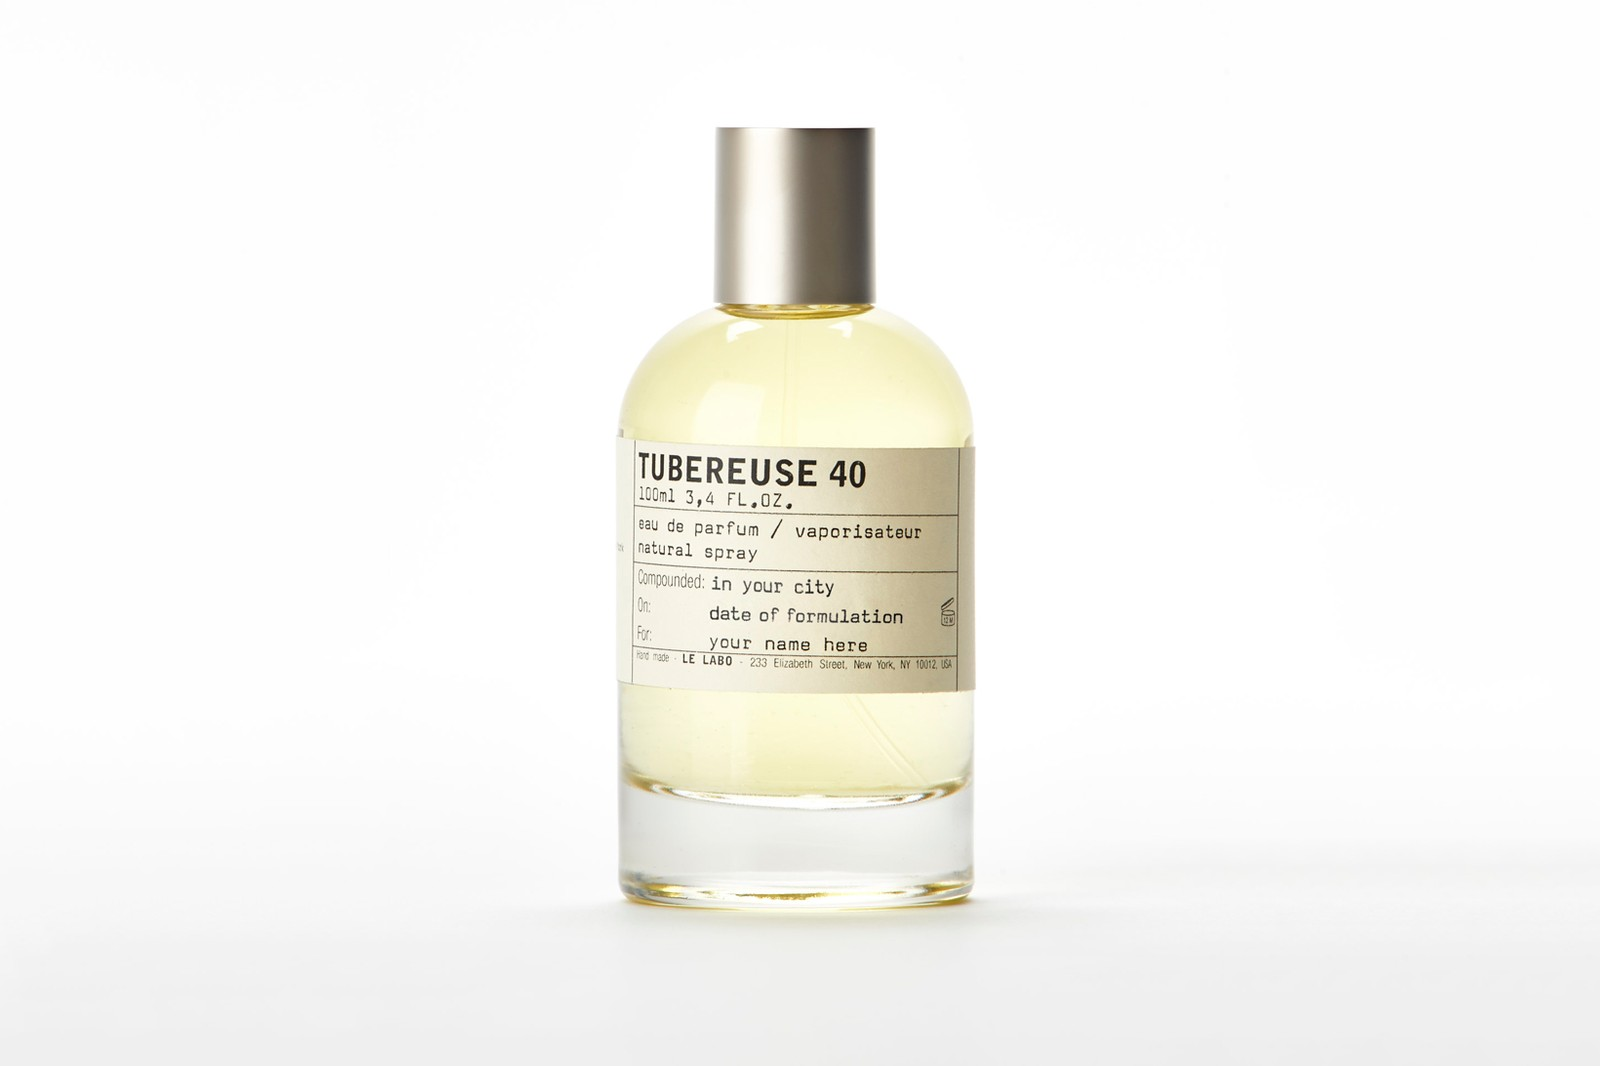 le labo city exclusive perfumes fragrances london new york hong kong scents unisex limited edition